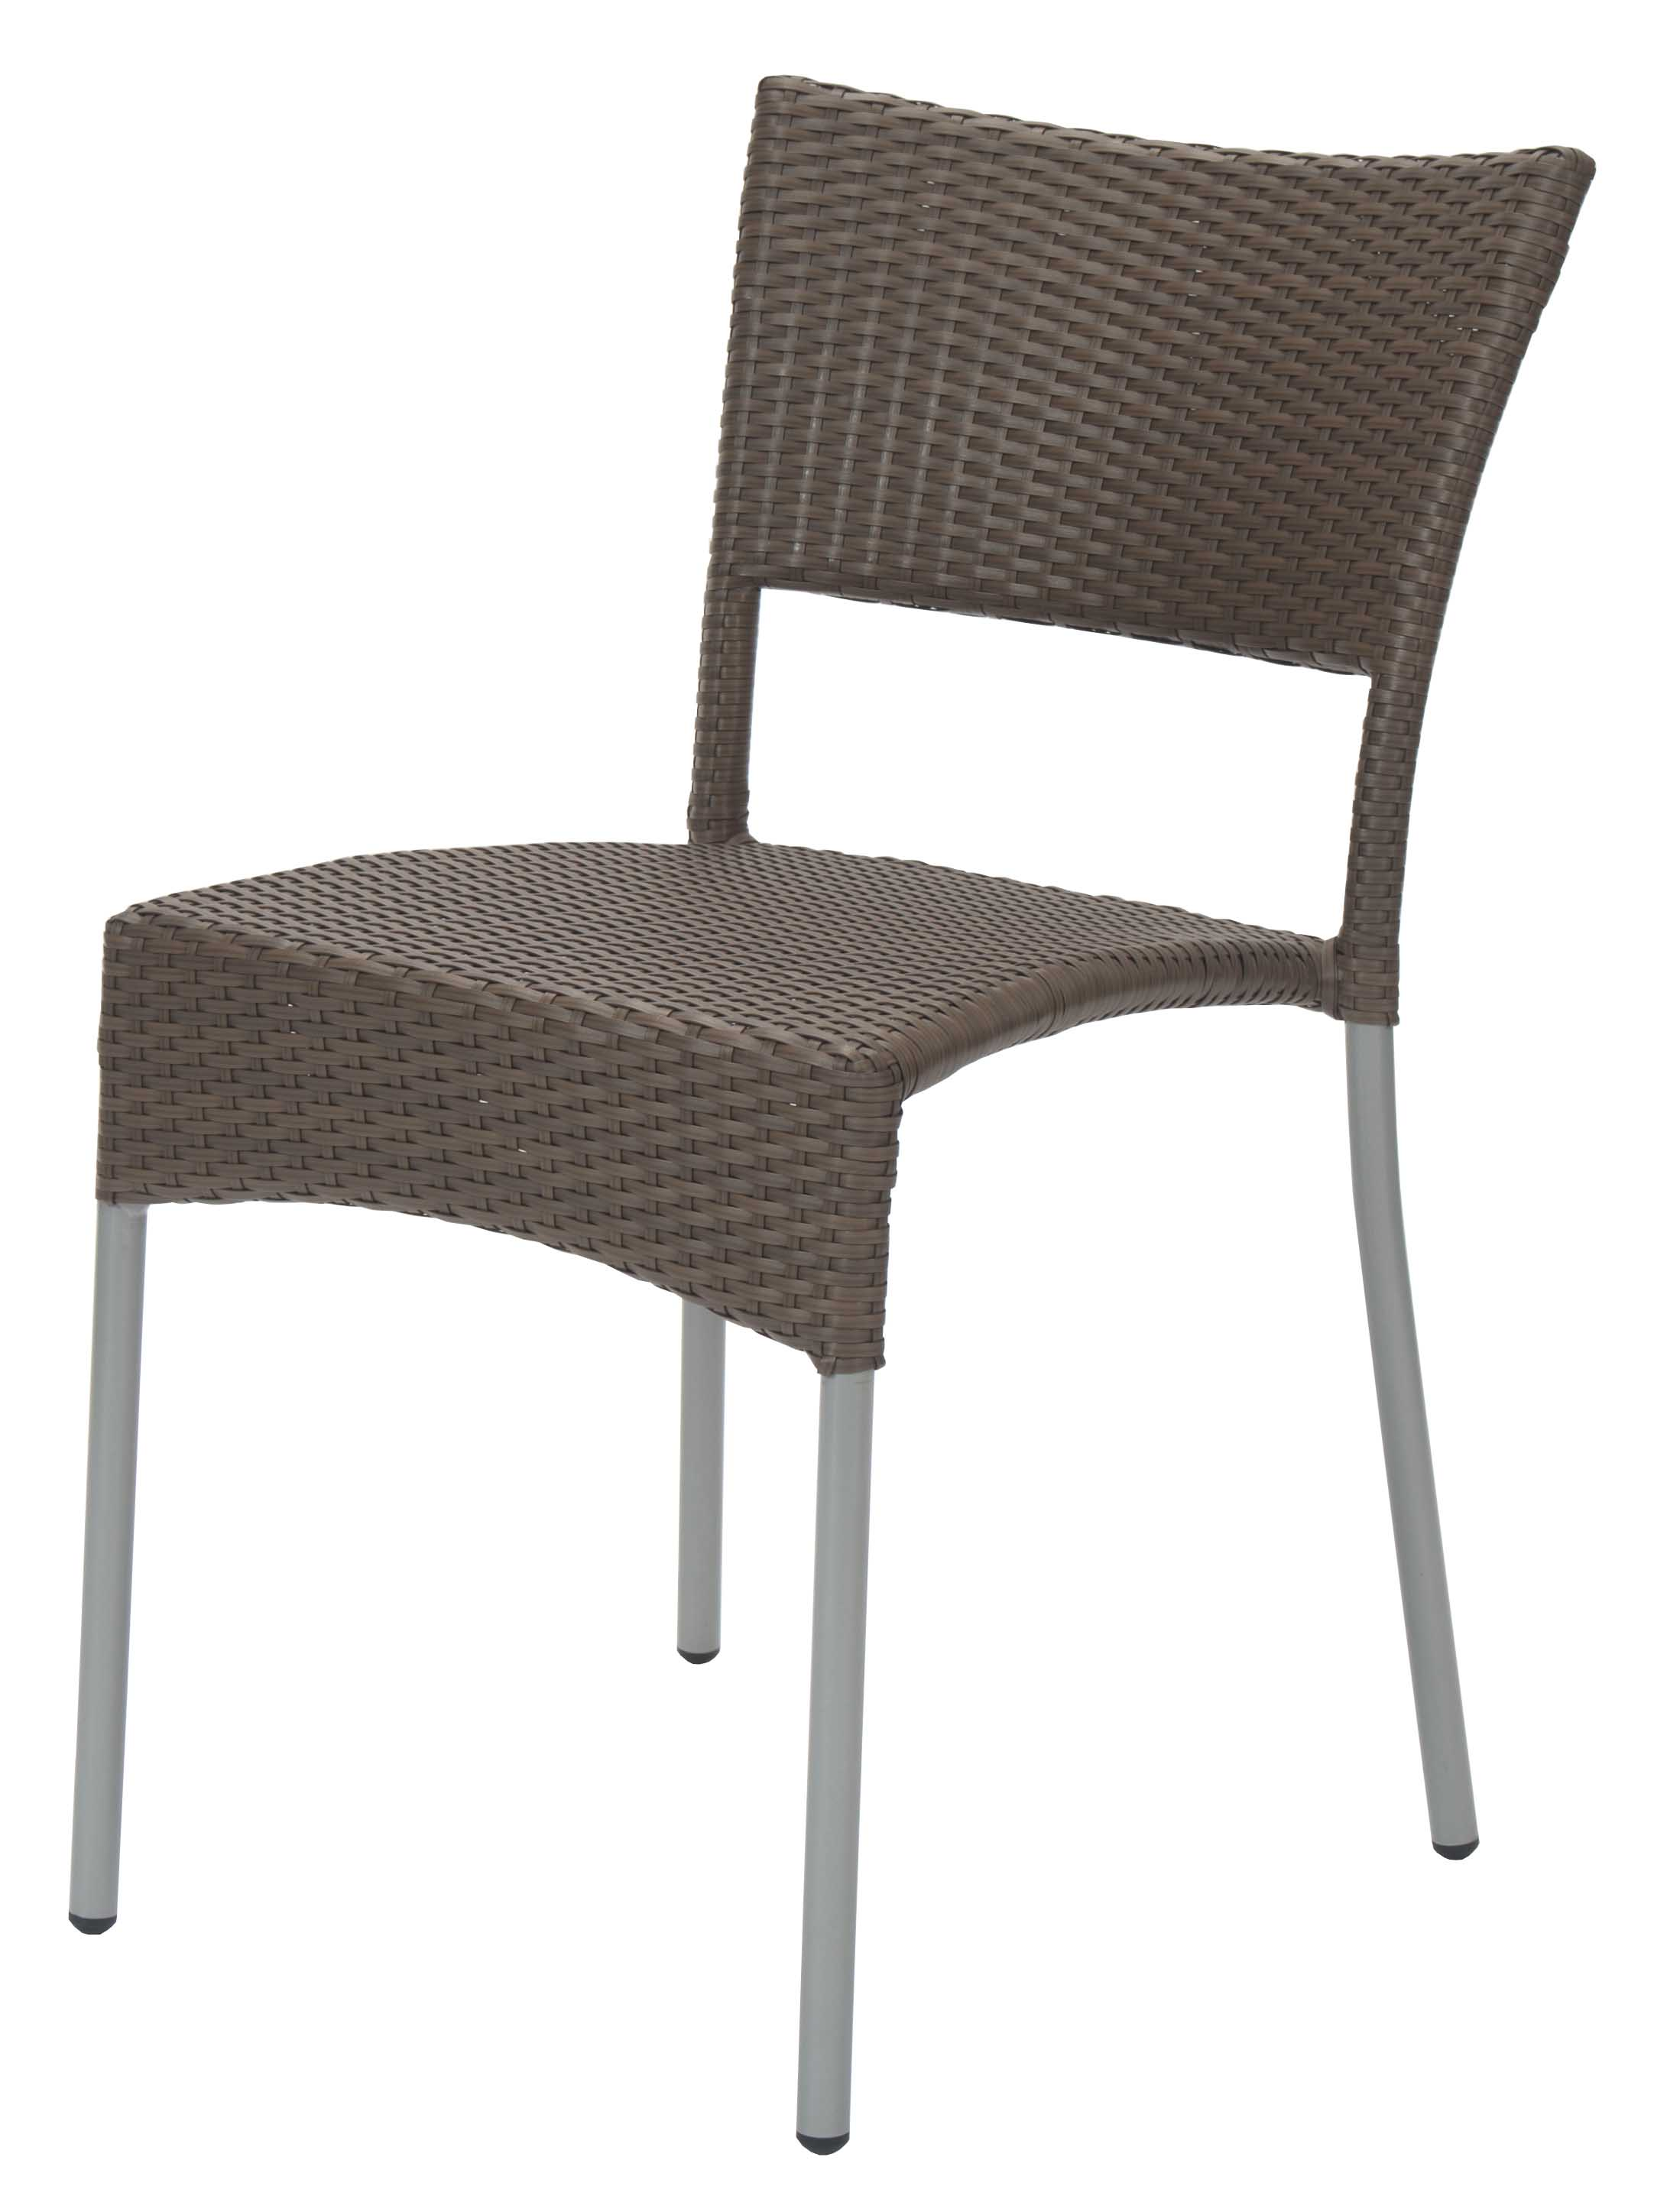 Rollo Outdoor Dining Chair Summergrass Pr Home